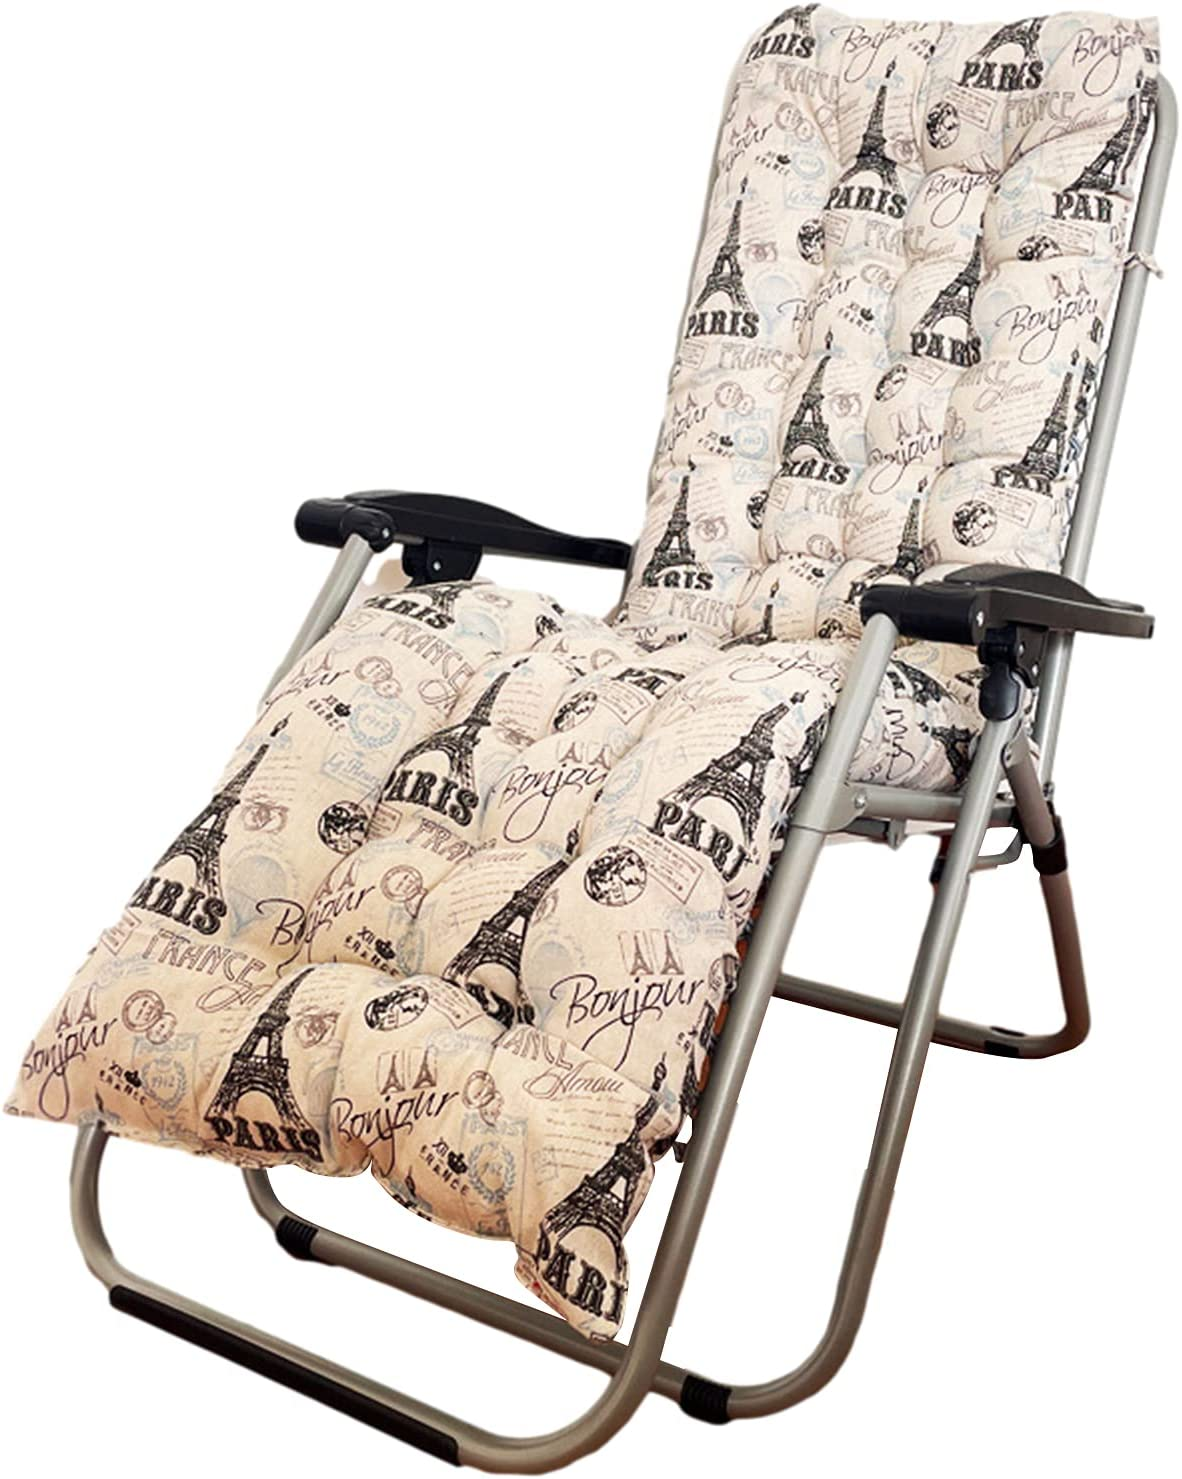 Max 57% OFF Patio Chaise Lounger Cushion Arlington Mall Large Non-Slip Chair Extra